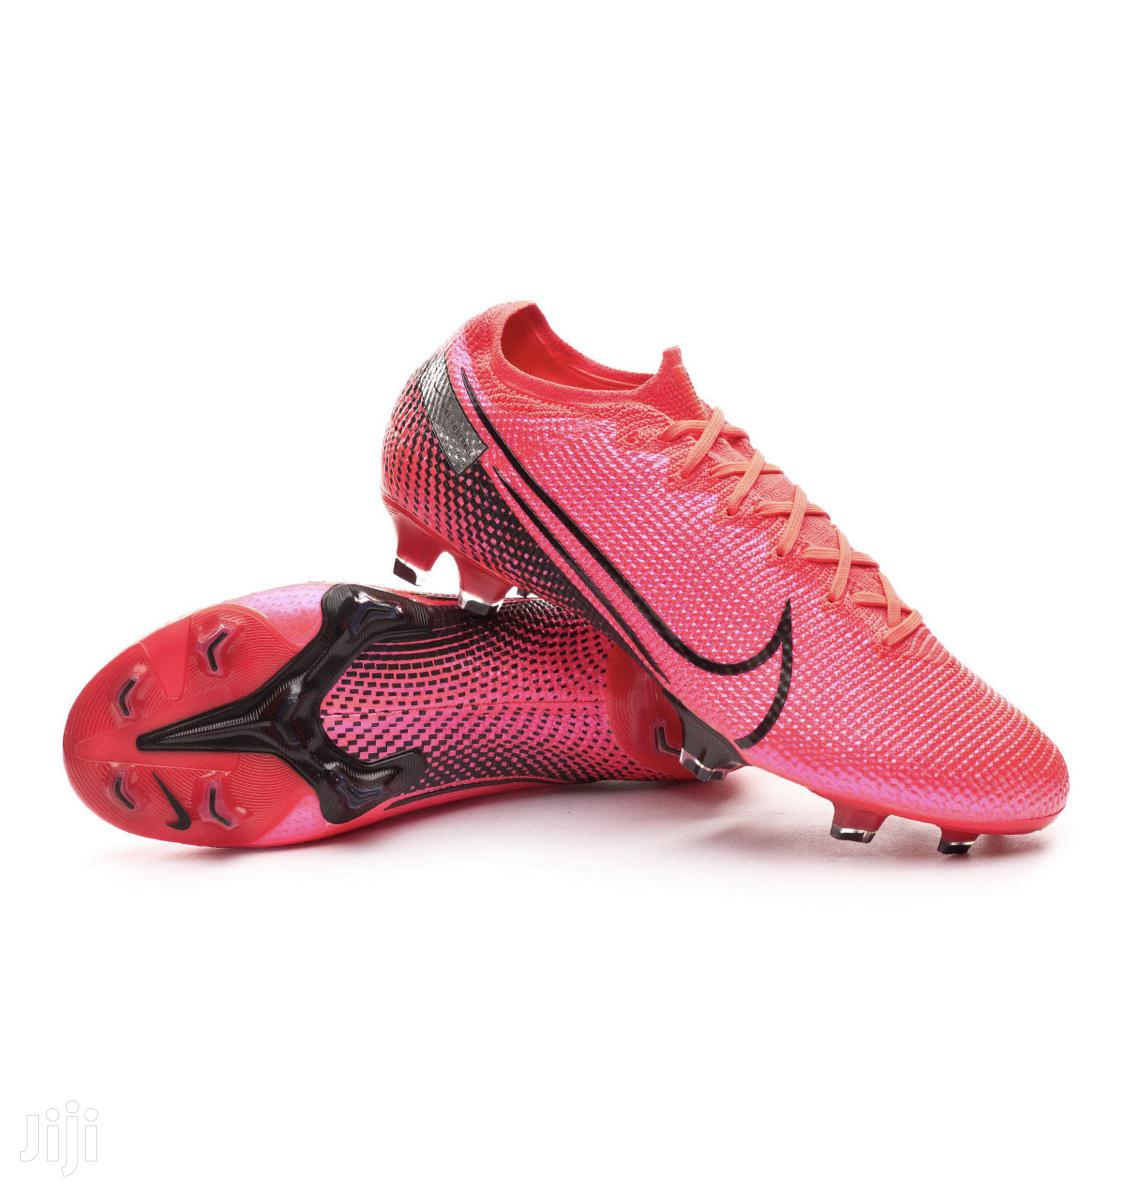 Nike Mercurial Vapor 13 Elite Soccer Boot | Shoes for sale in Cantonments, Greater Accra, Ghana